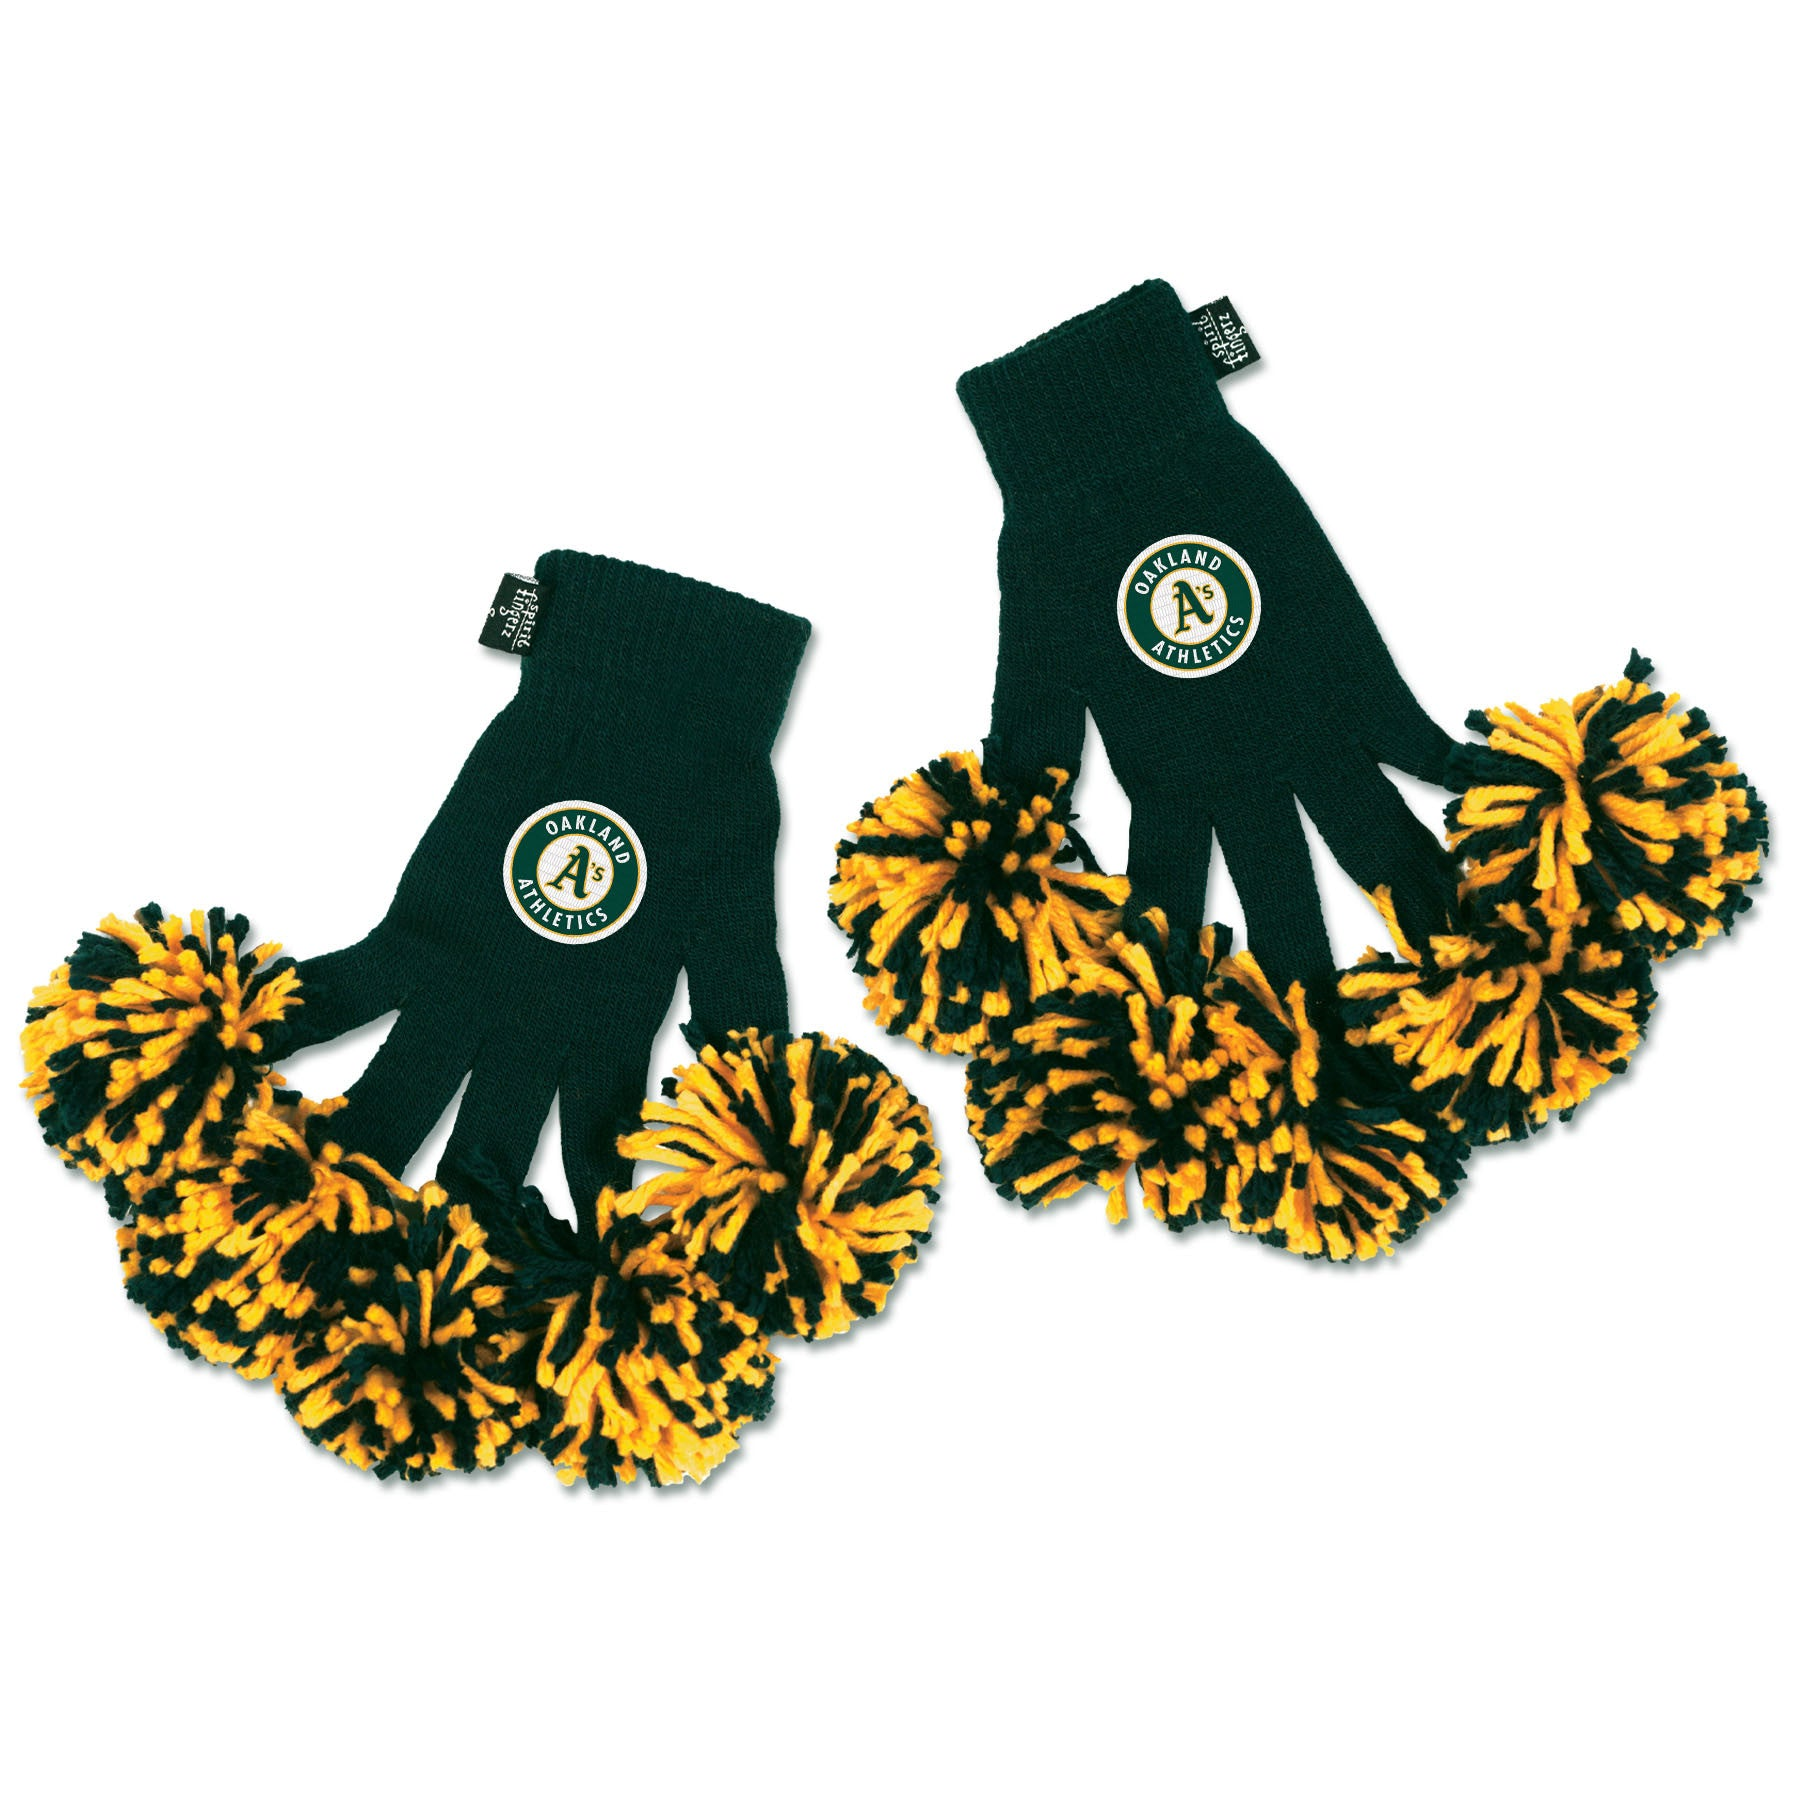 Oakland Athletics MLB Spirit Fingerz Cheerleading Pom-Pom Gloves